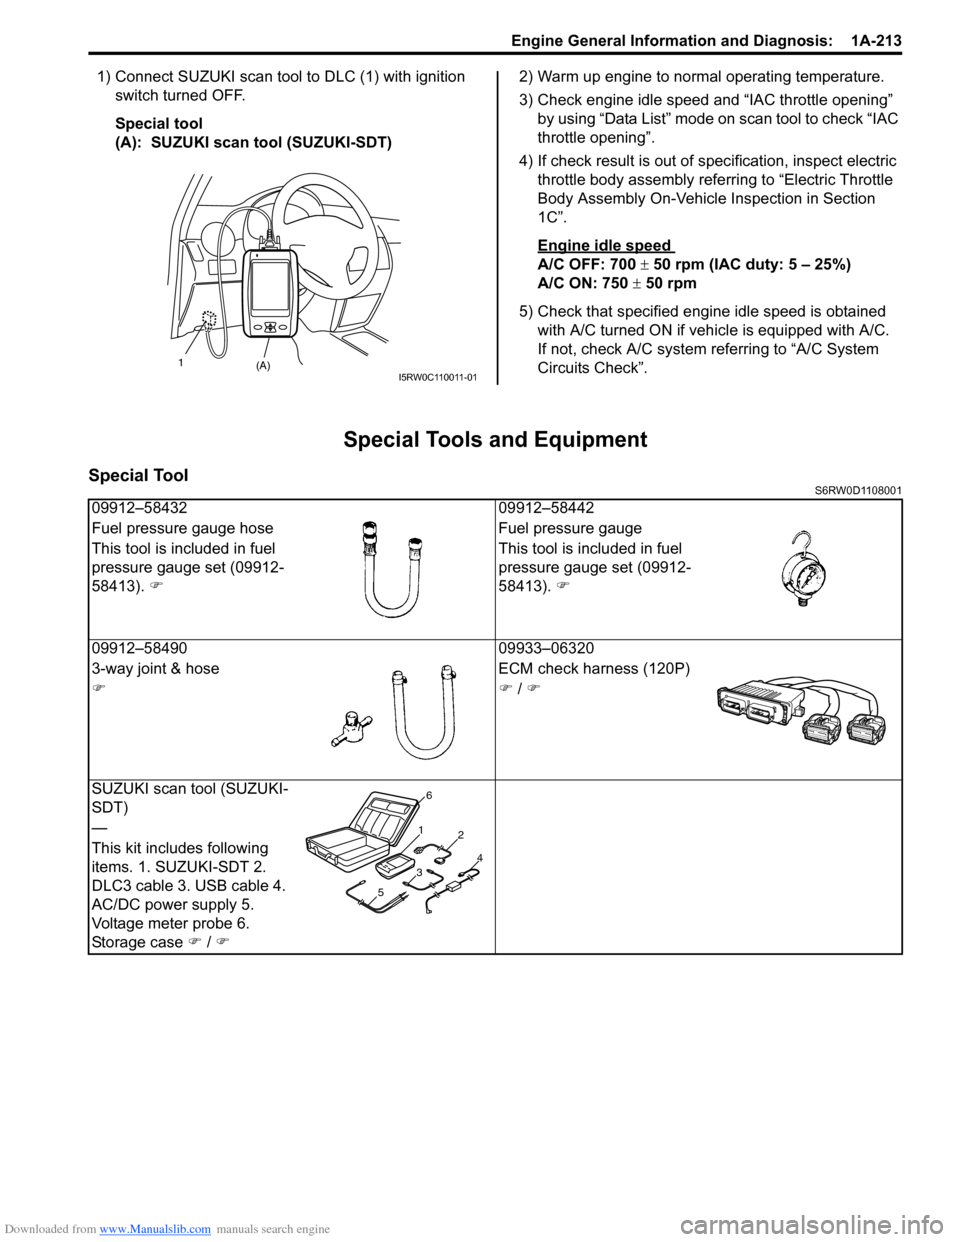 Suzuki Sx4 2006 1g Service Workshop Manual 3 Way Switch Diagnosis Page 263 Of 1556